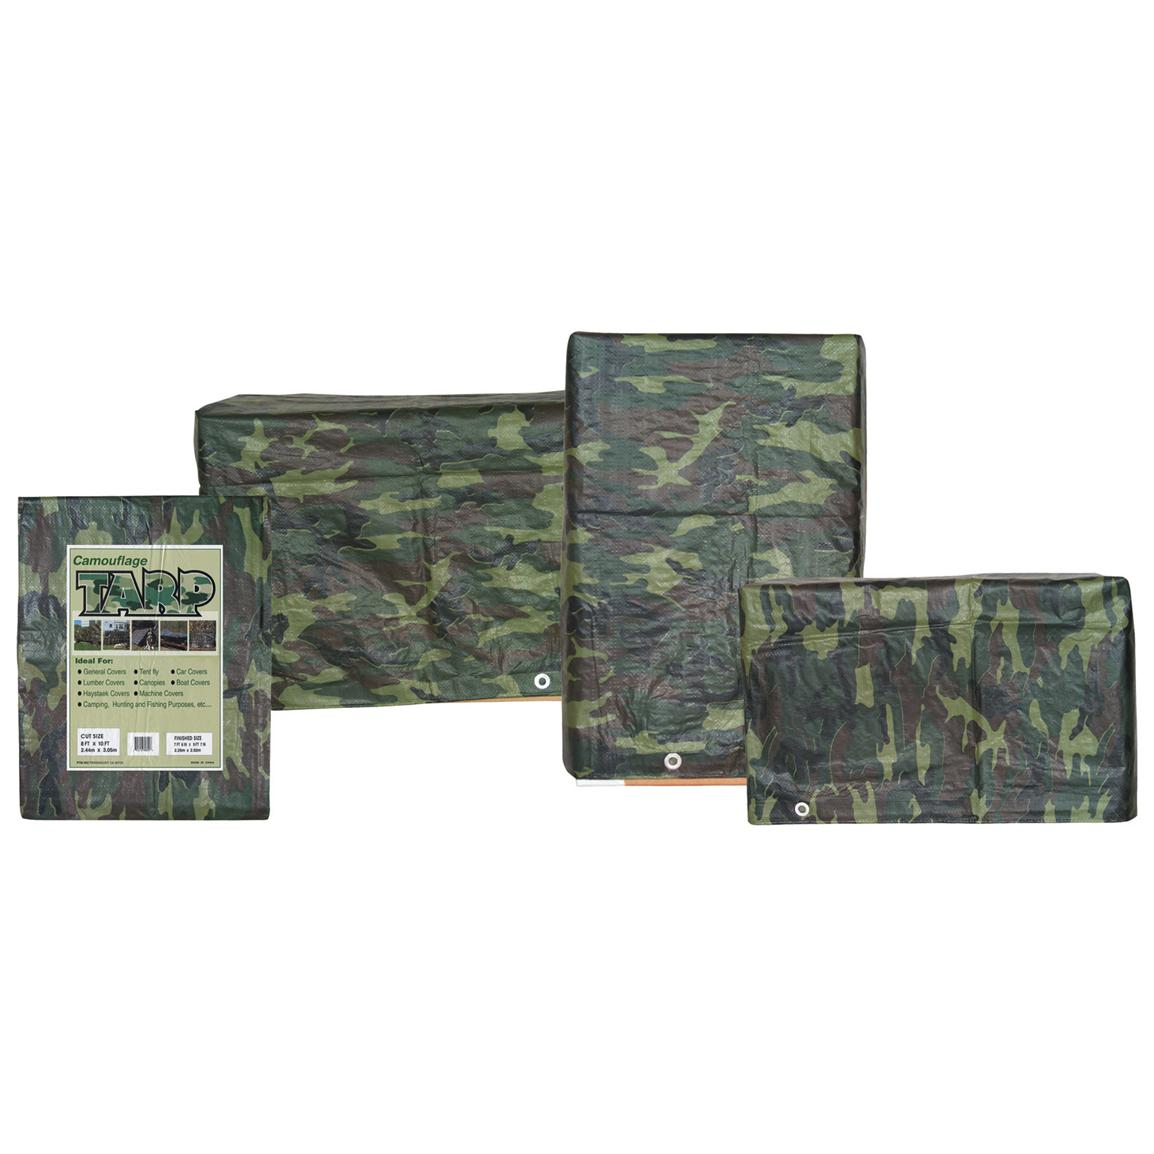 Fox Outdoor Polyethylene 12x30' Camoflauge Tarp